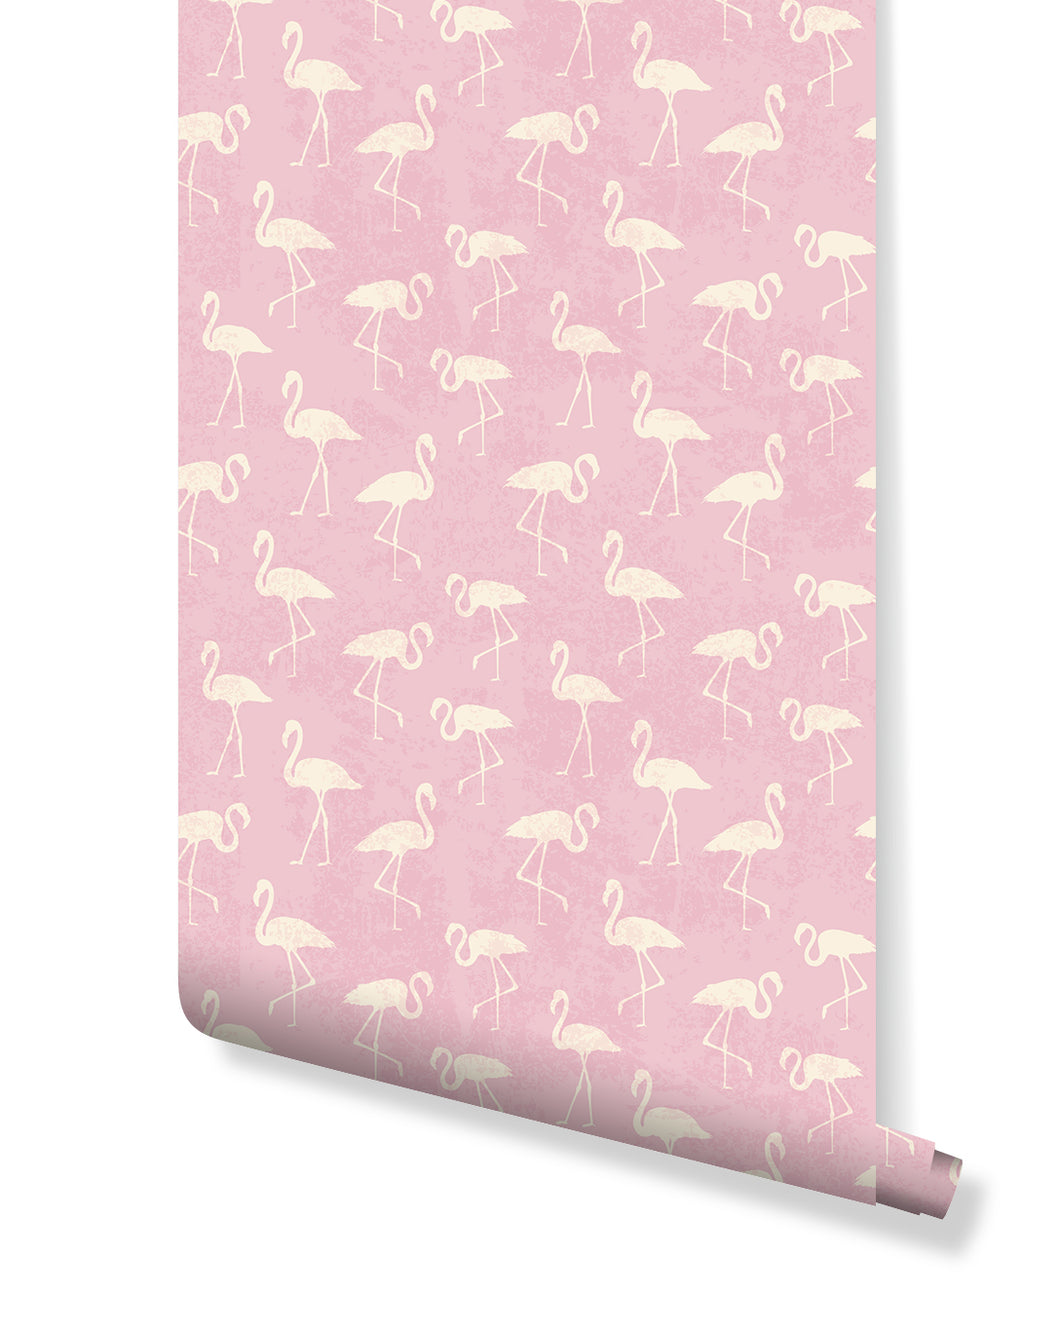 Tropical Self Adhesive Removable Wallpaper with white flamingos on Pink teal self adhesive vintage wall mural Custom Colors Available CC042